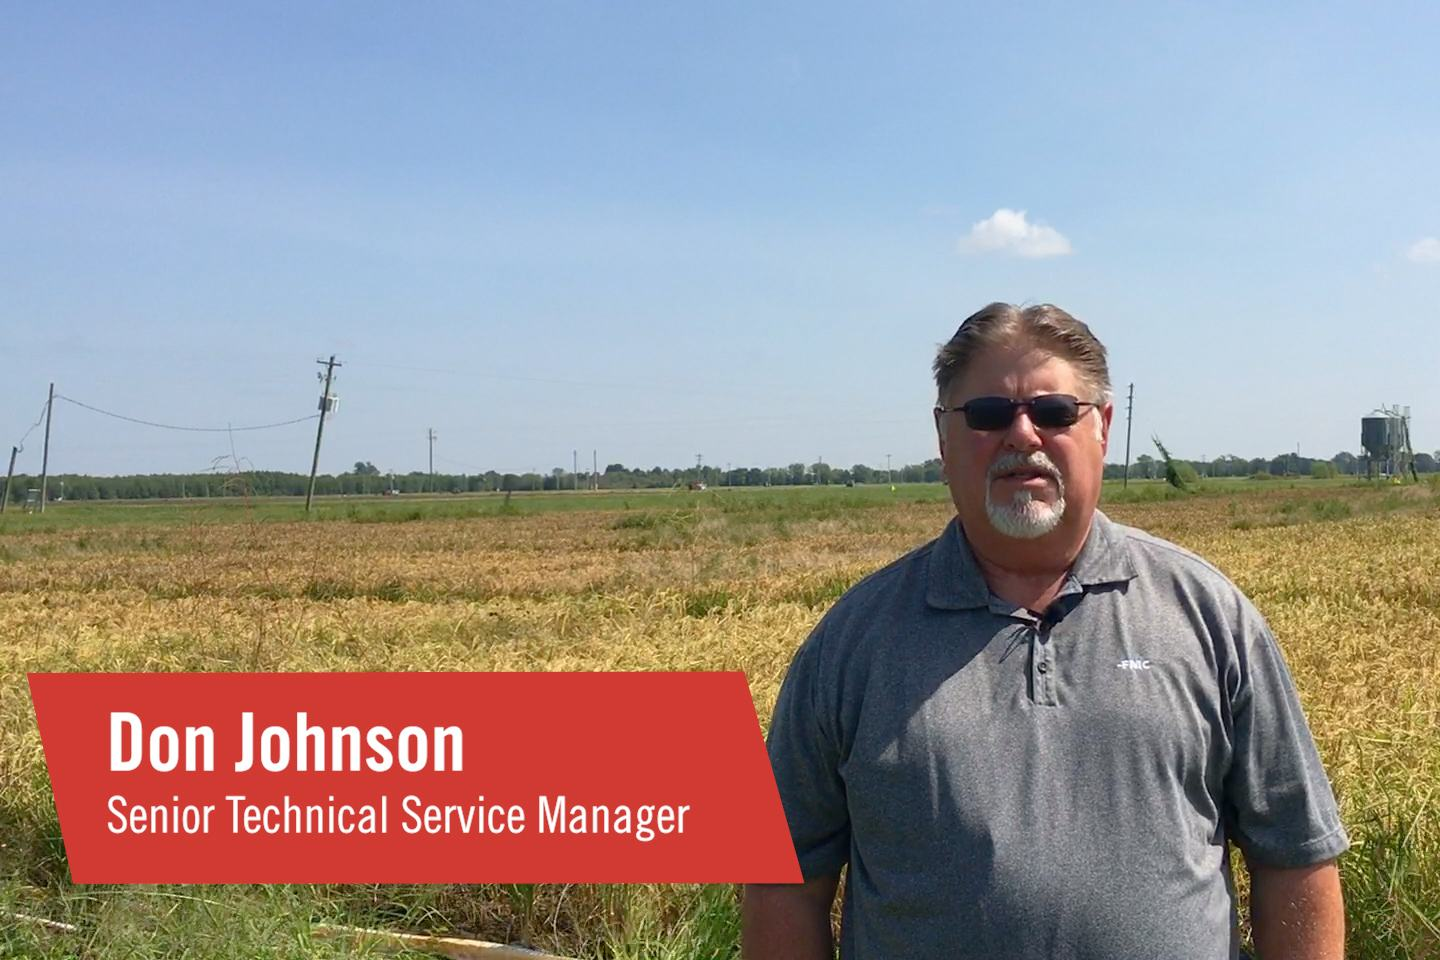 FMC Senior Technical Service Manager Don Johnson explains why Command® 3ME microencapsulated herbicide is the top preemergence herbicide for control of tough weeds like barnyardgrass and sprangletop across the Mid-South.